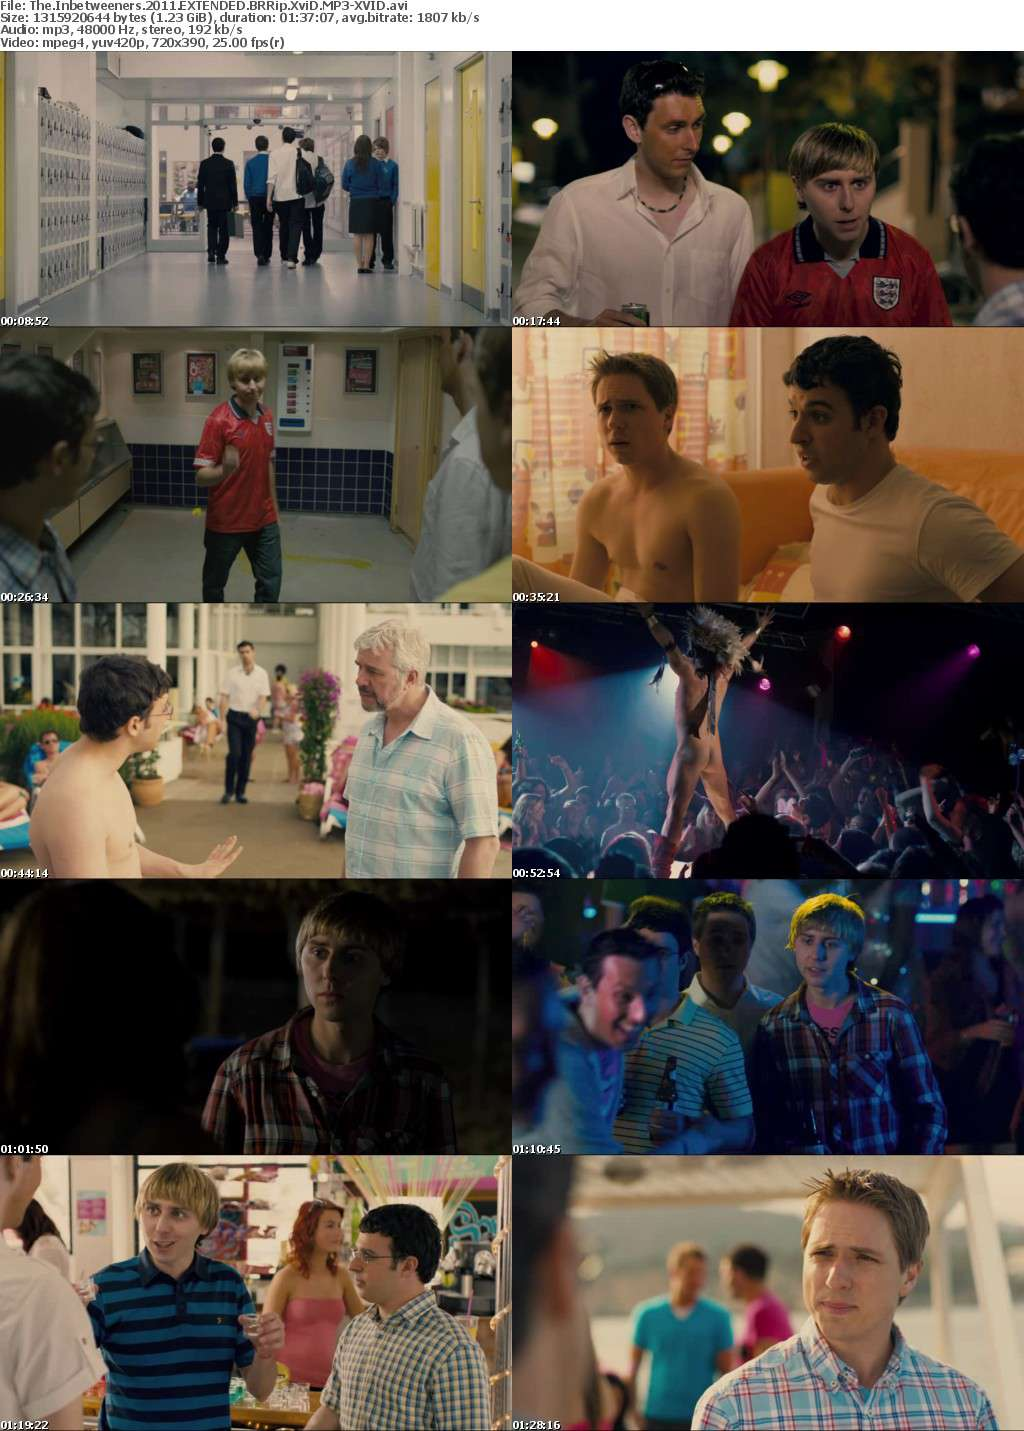 The Inbetweeners 2011 EXTENDED BRRip XviD MP3-XVID